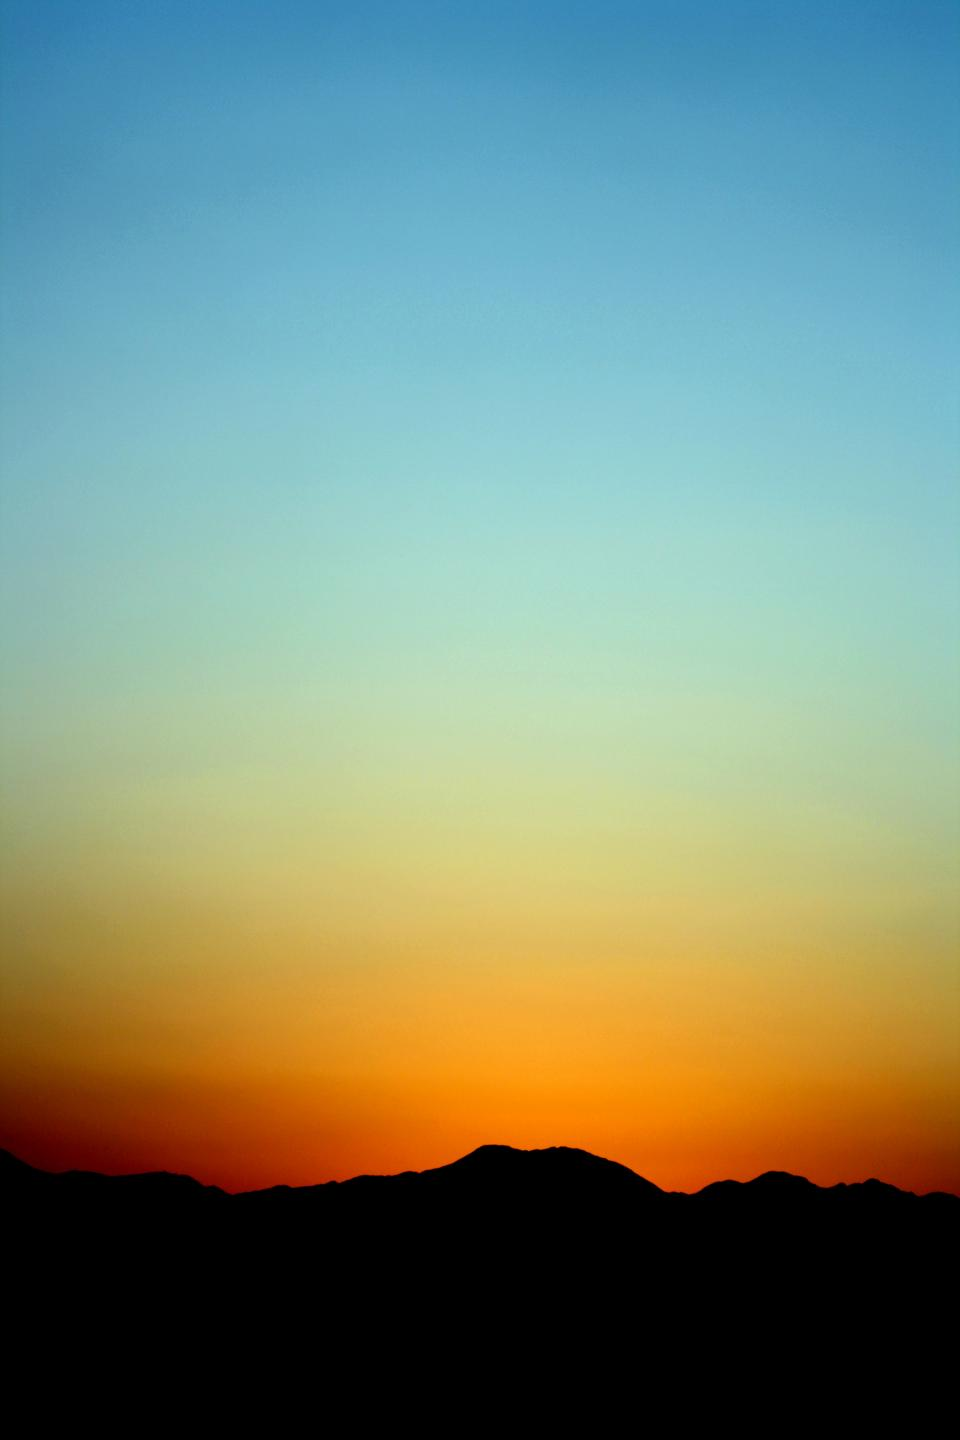 nature mountains silhouette sun gradient orange blue green colors